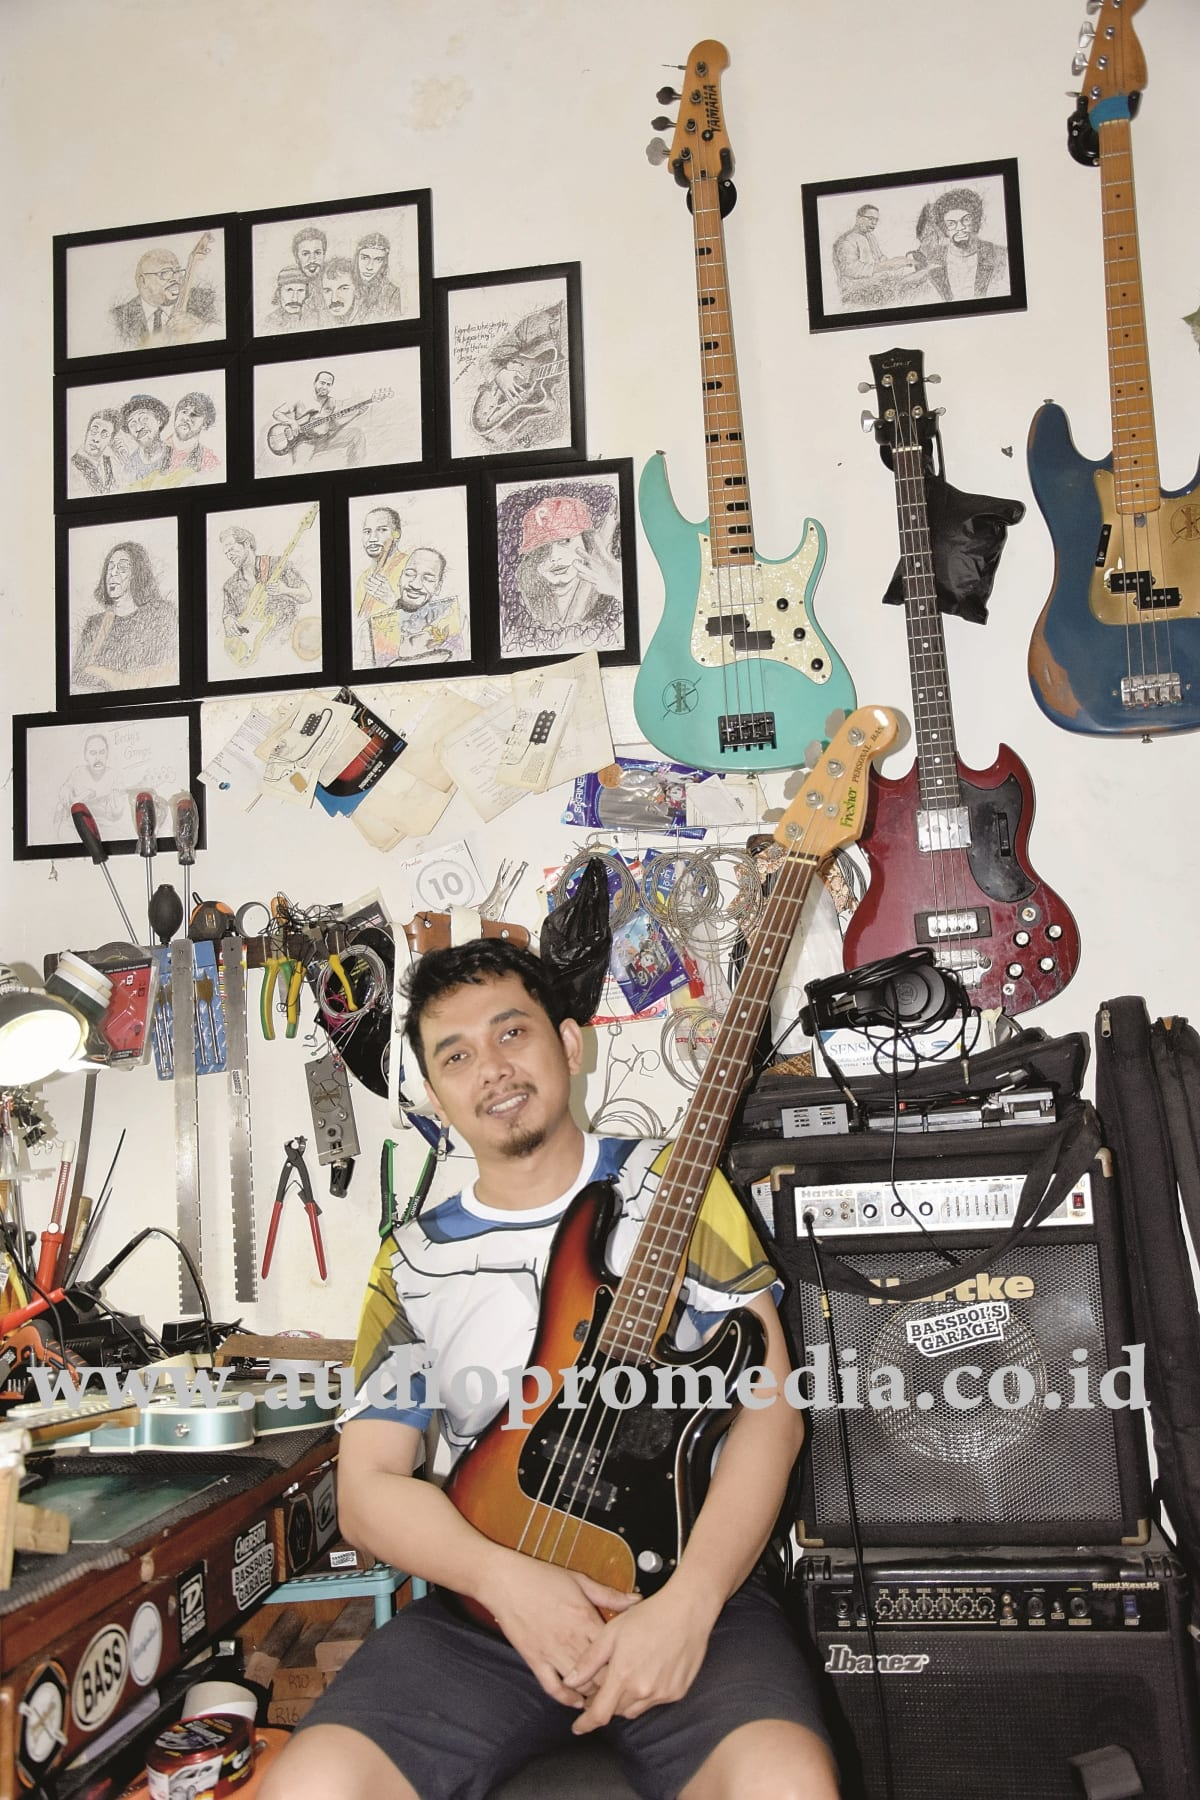 ANDRI YUSUF GUITAR/BASS TECHNICIAN